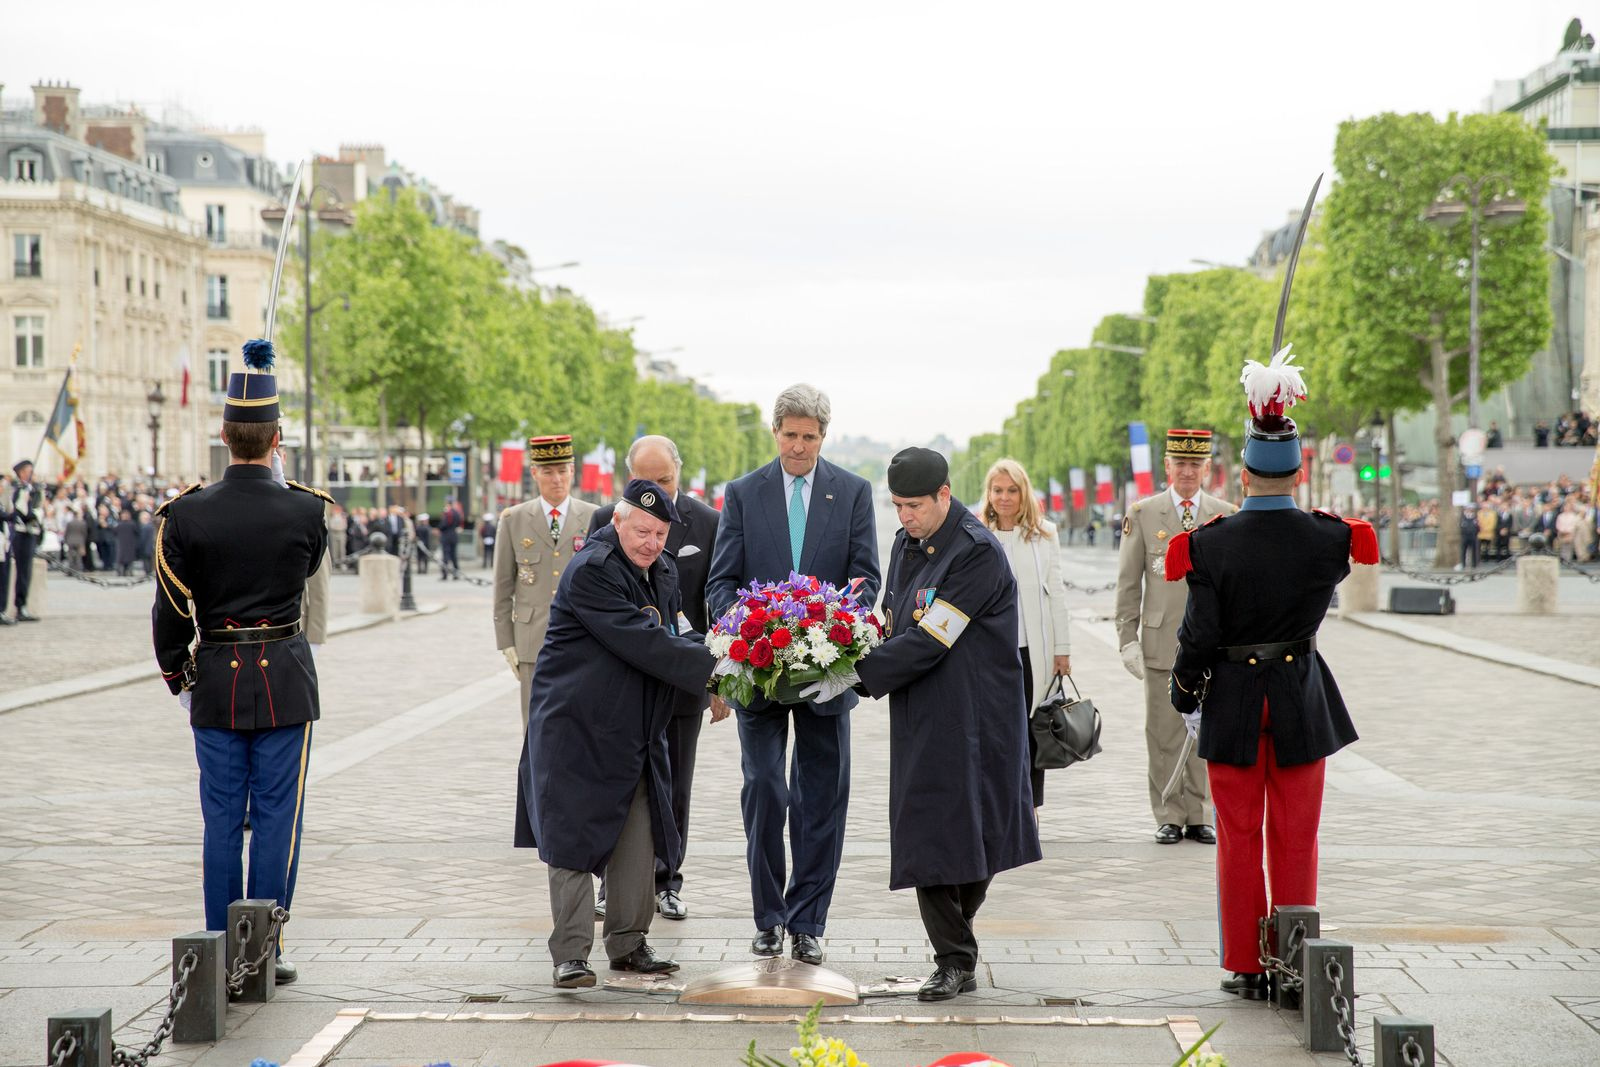 John Kerry/ WW2 Gedenken/ Paris